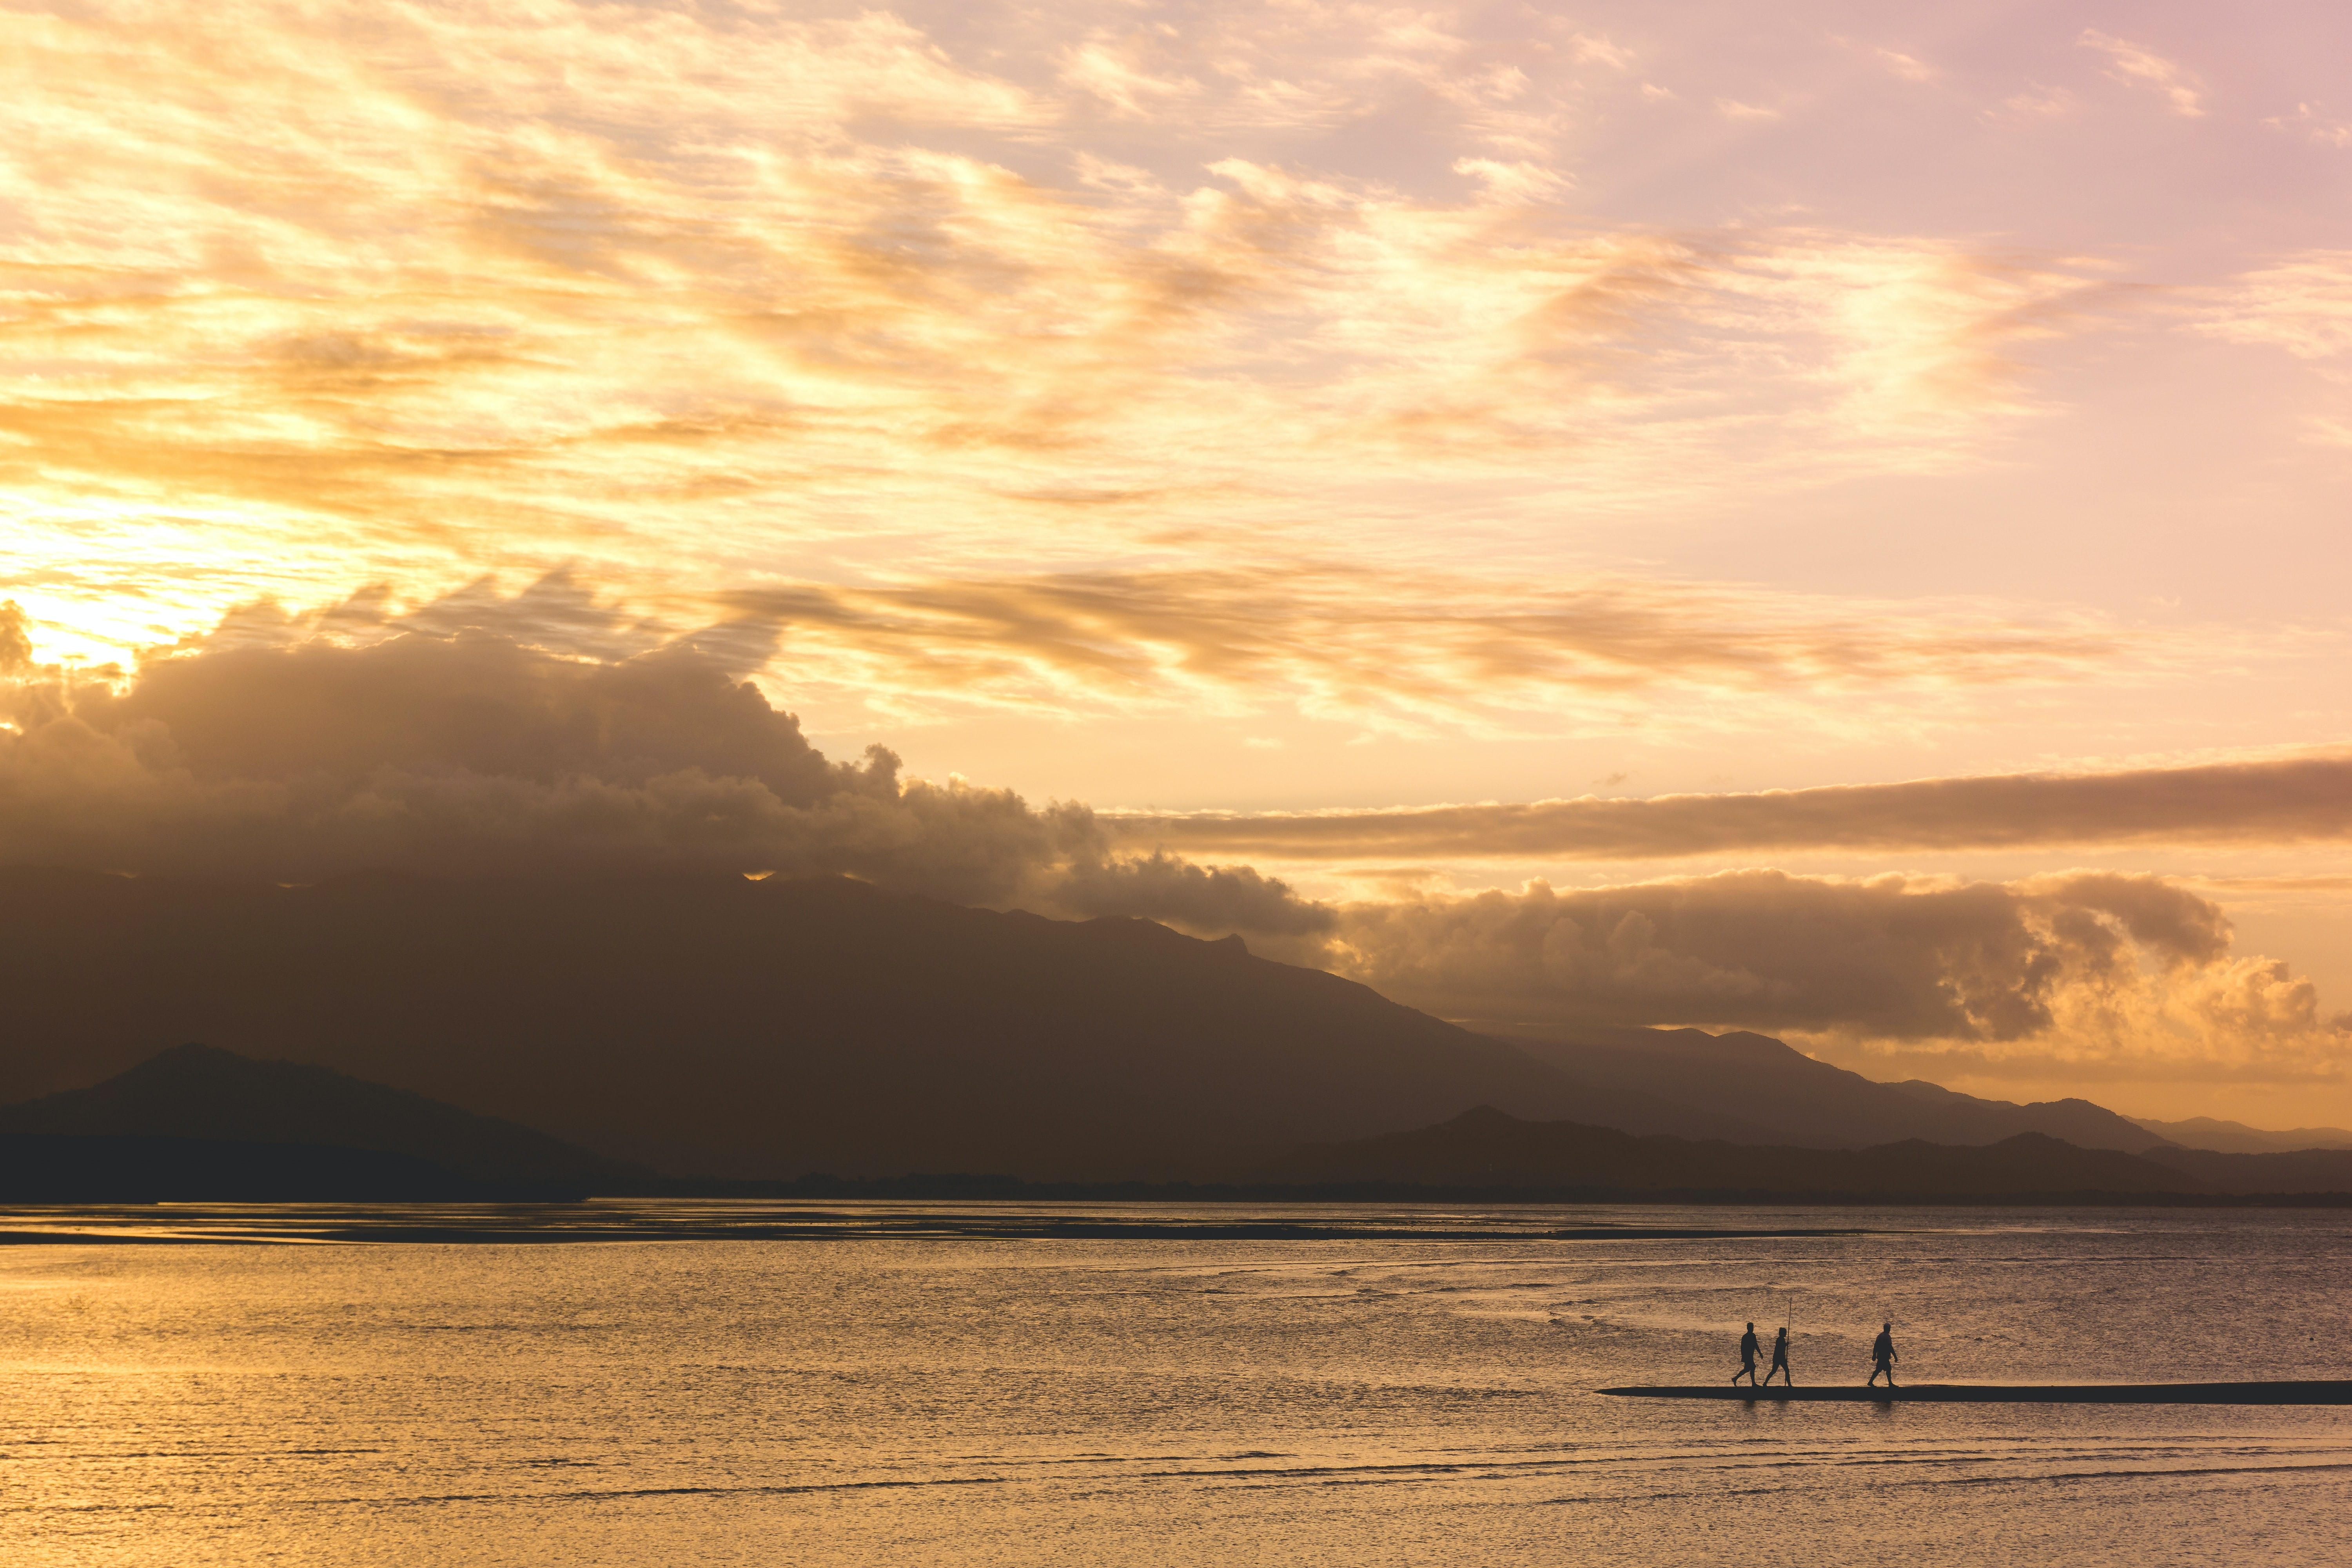 silhouette of three people walking on body of water during golden hour